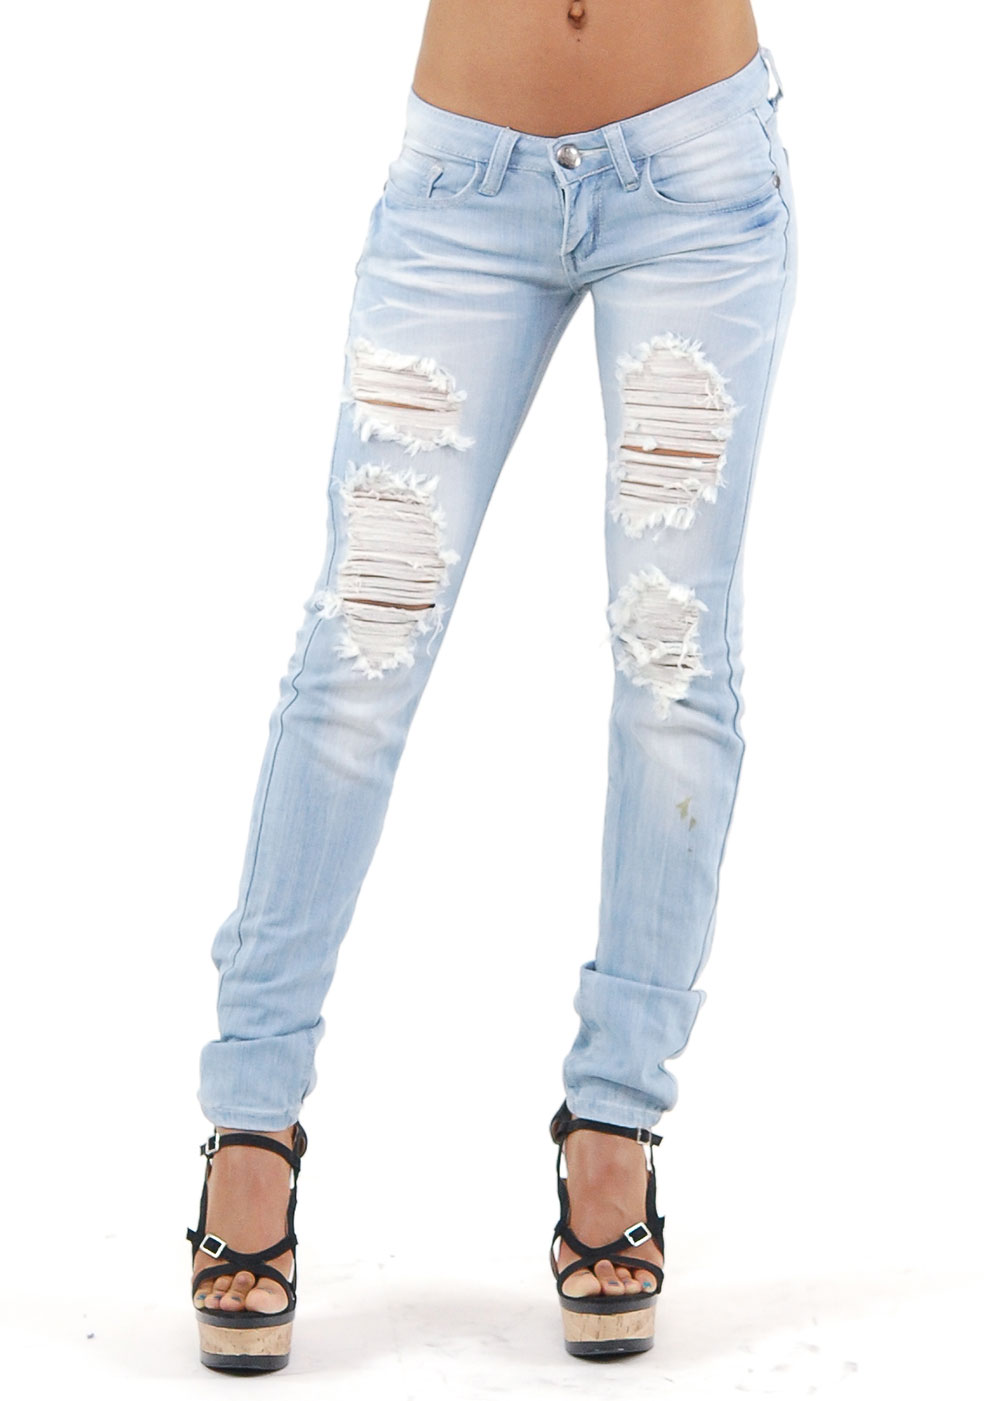 Cute Skinny Jeans - Jeans Am